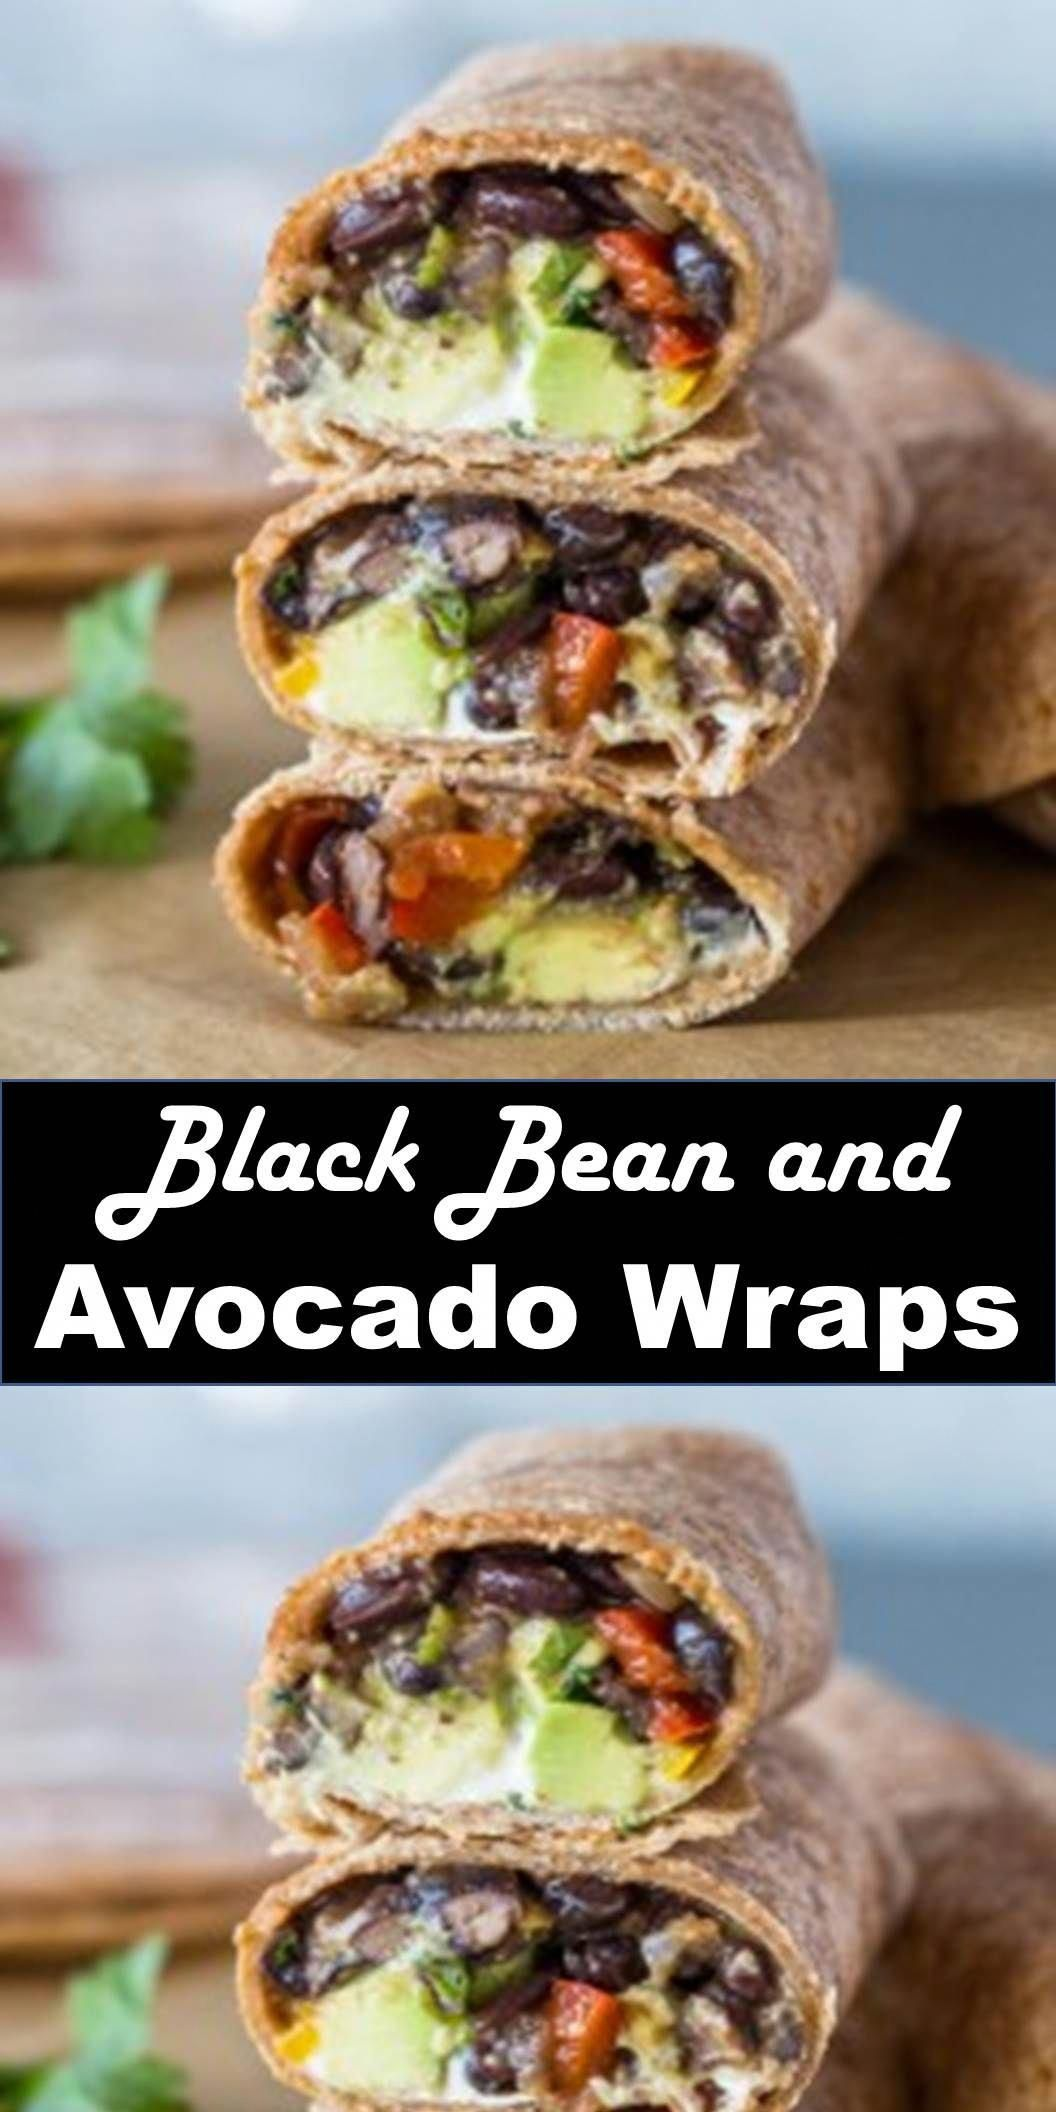 Delicious and healthy family choice special food and drink Black Bean and Avocado Wraps